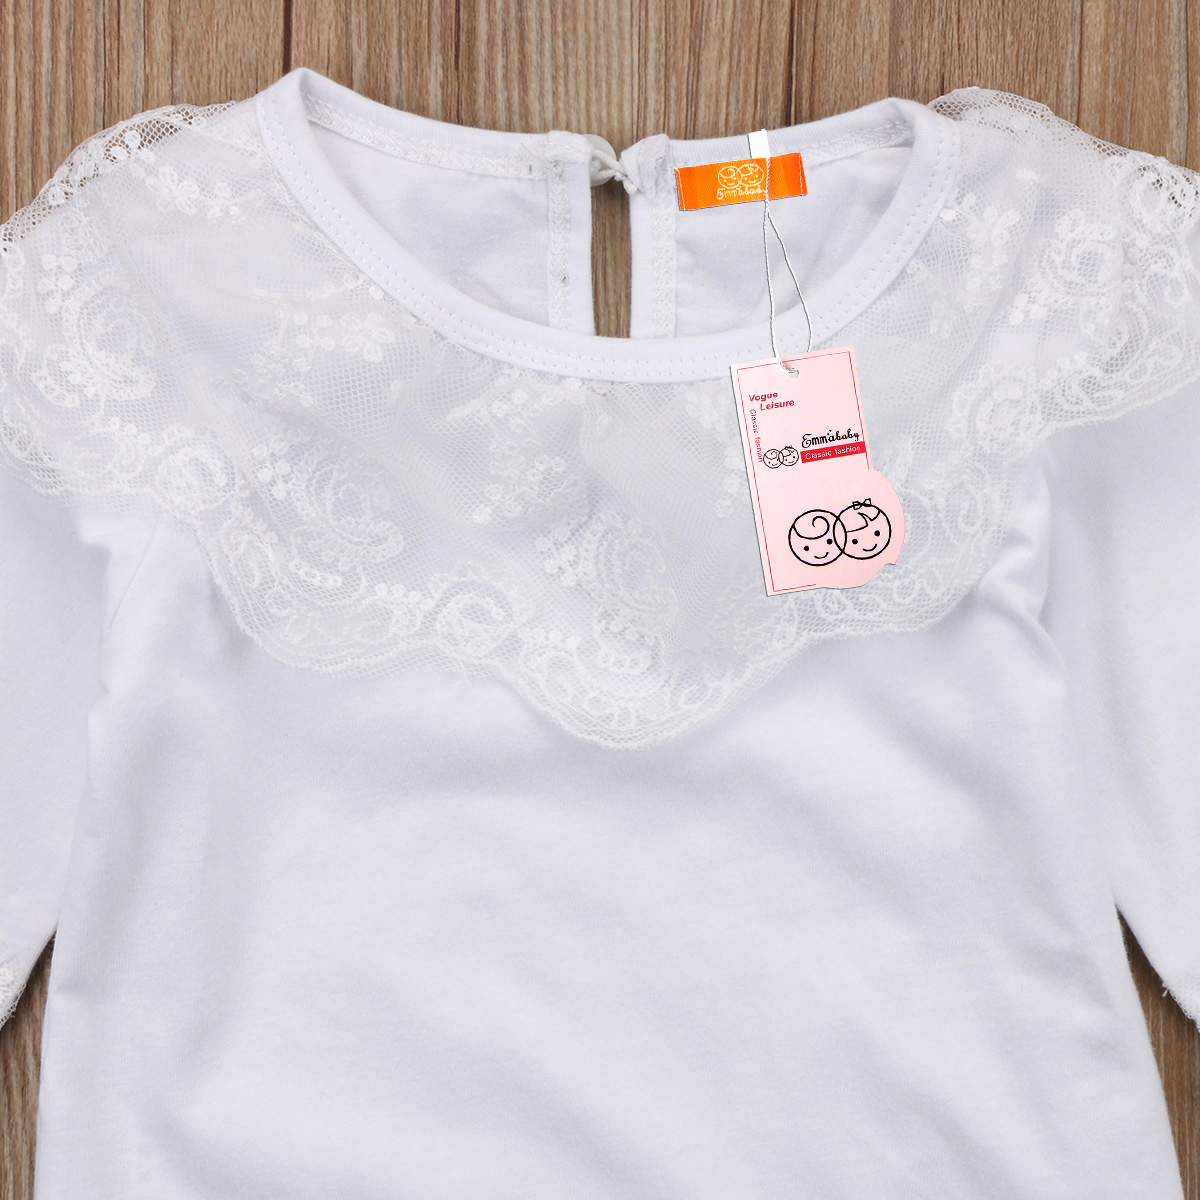 Fashion Kid Baby Girls Lace Romper Party Bowknot Dresses Outfits Set Summer Clothes Infant Baby Girl Floral Clothes 0 24M in Dresses from Mother Kids